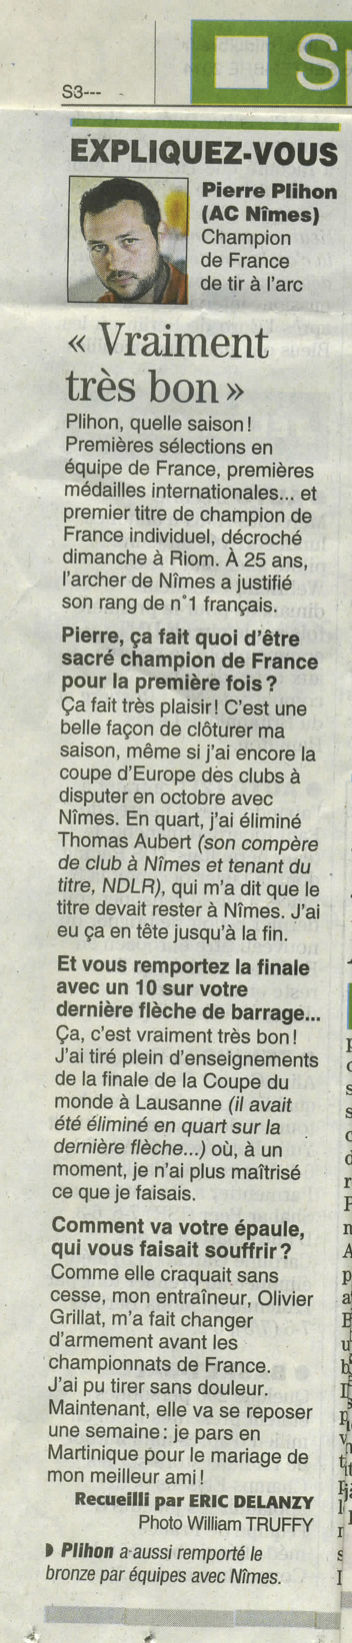 midi libre 16 septembre 2014 pierre plihon champion de france